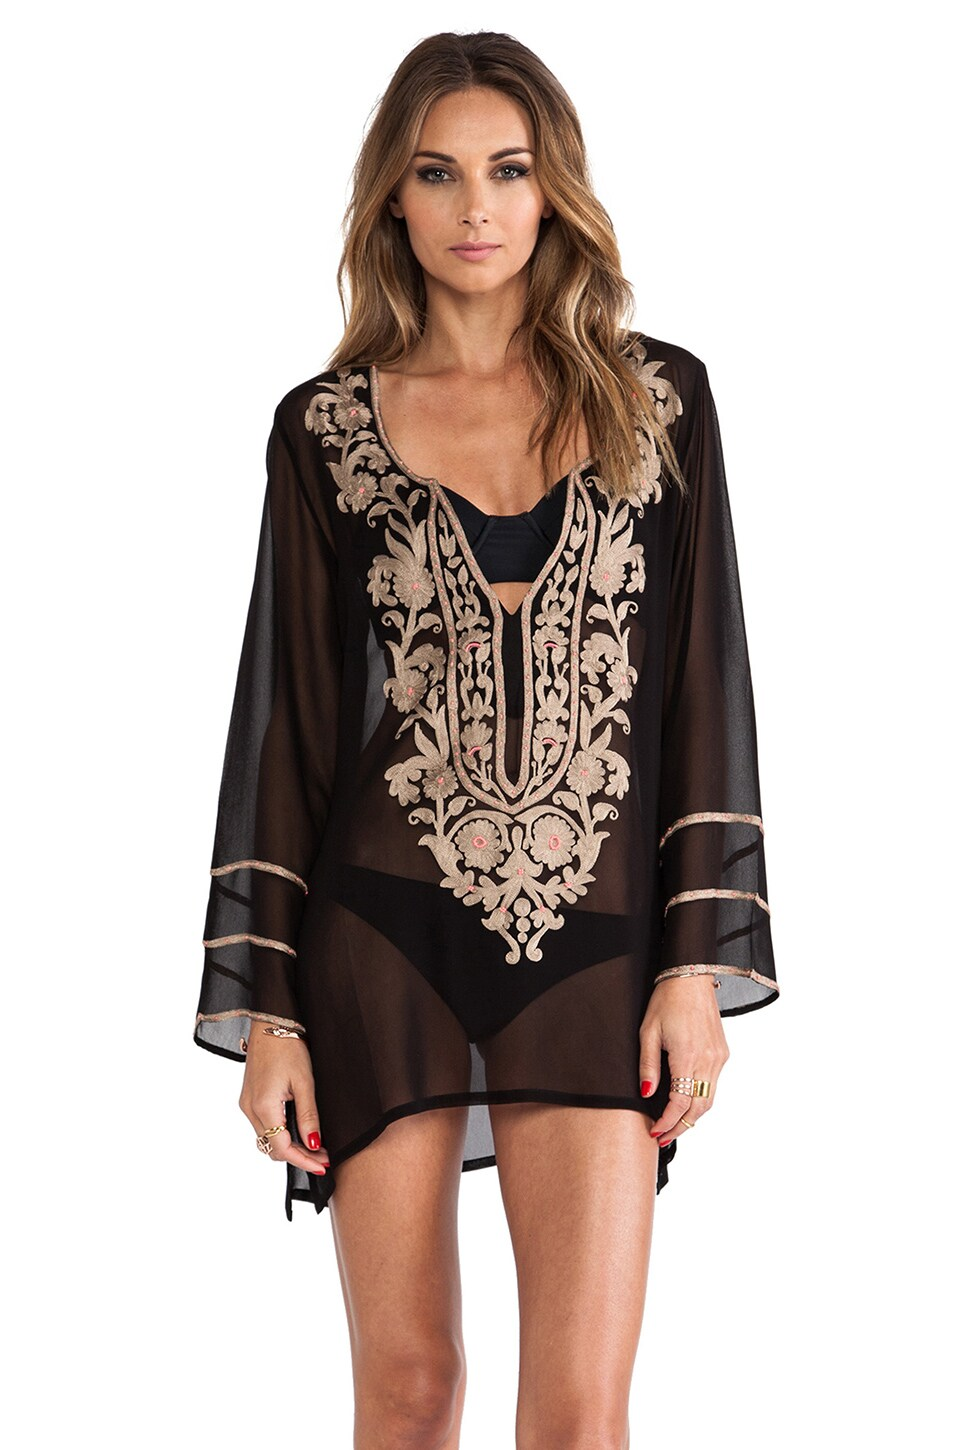 Ella Moss Belle Floral Tunic in Black